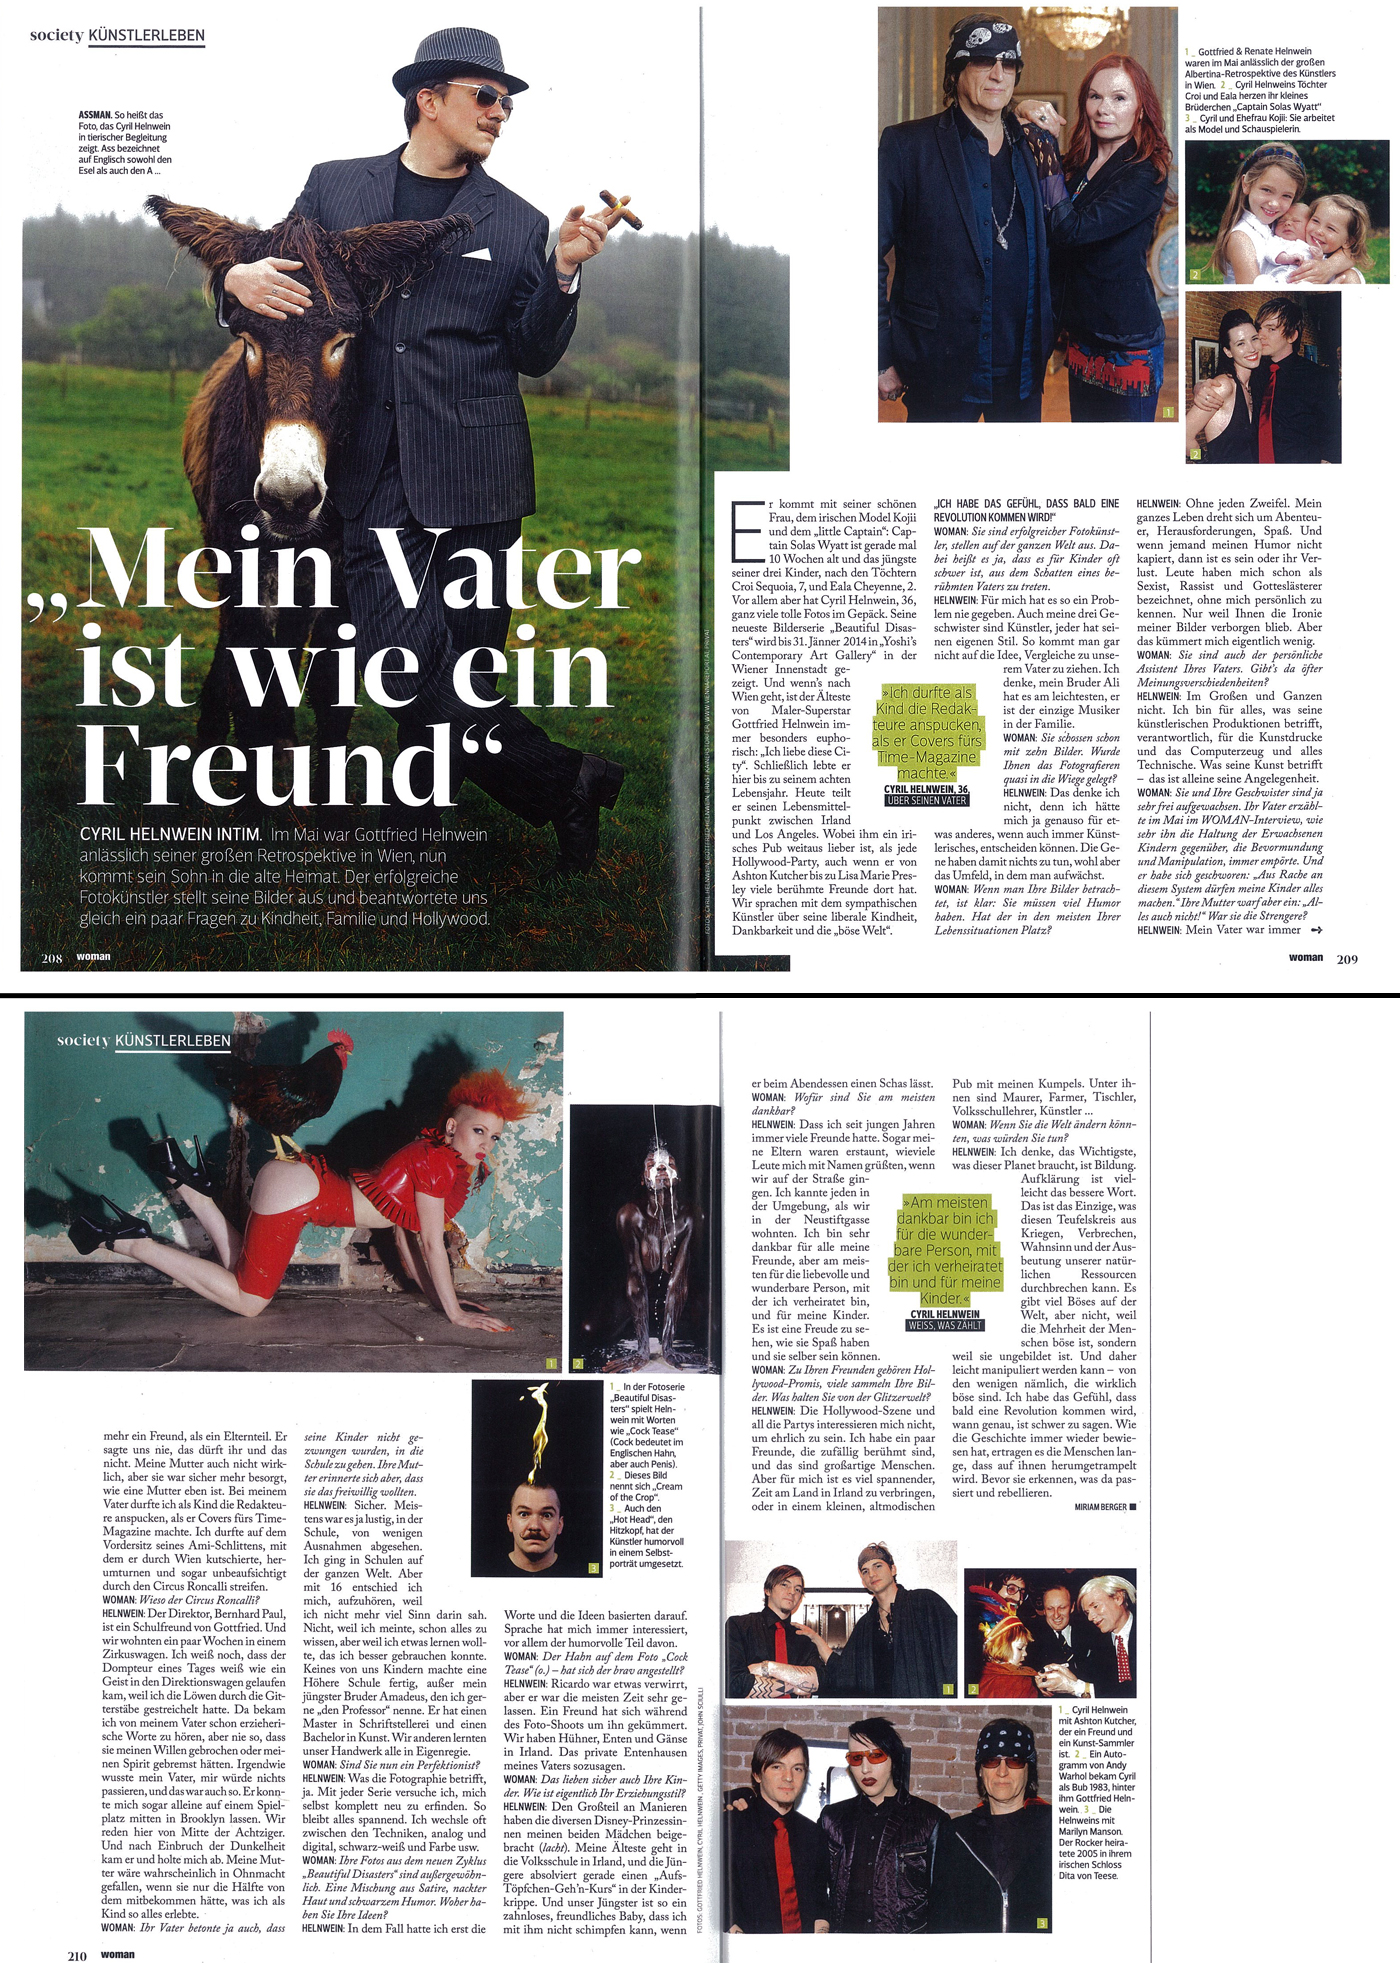 WOMAN magazine article and interview, Cyril Helnwein